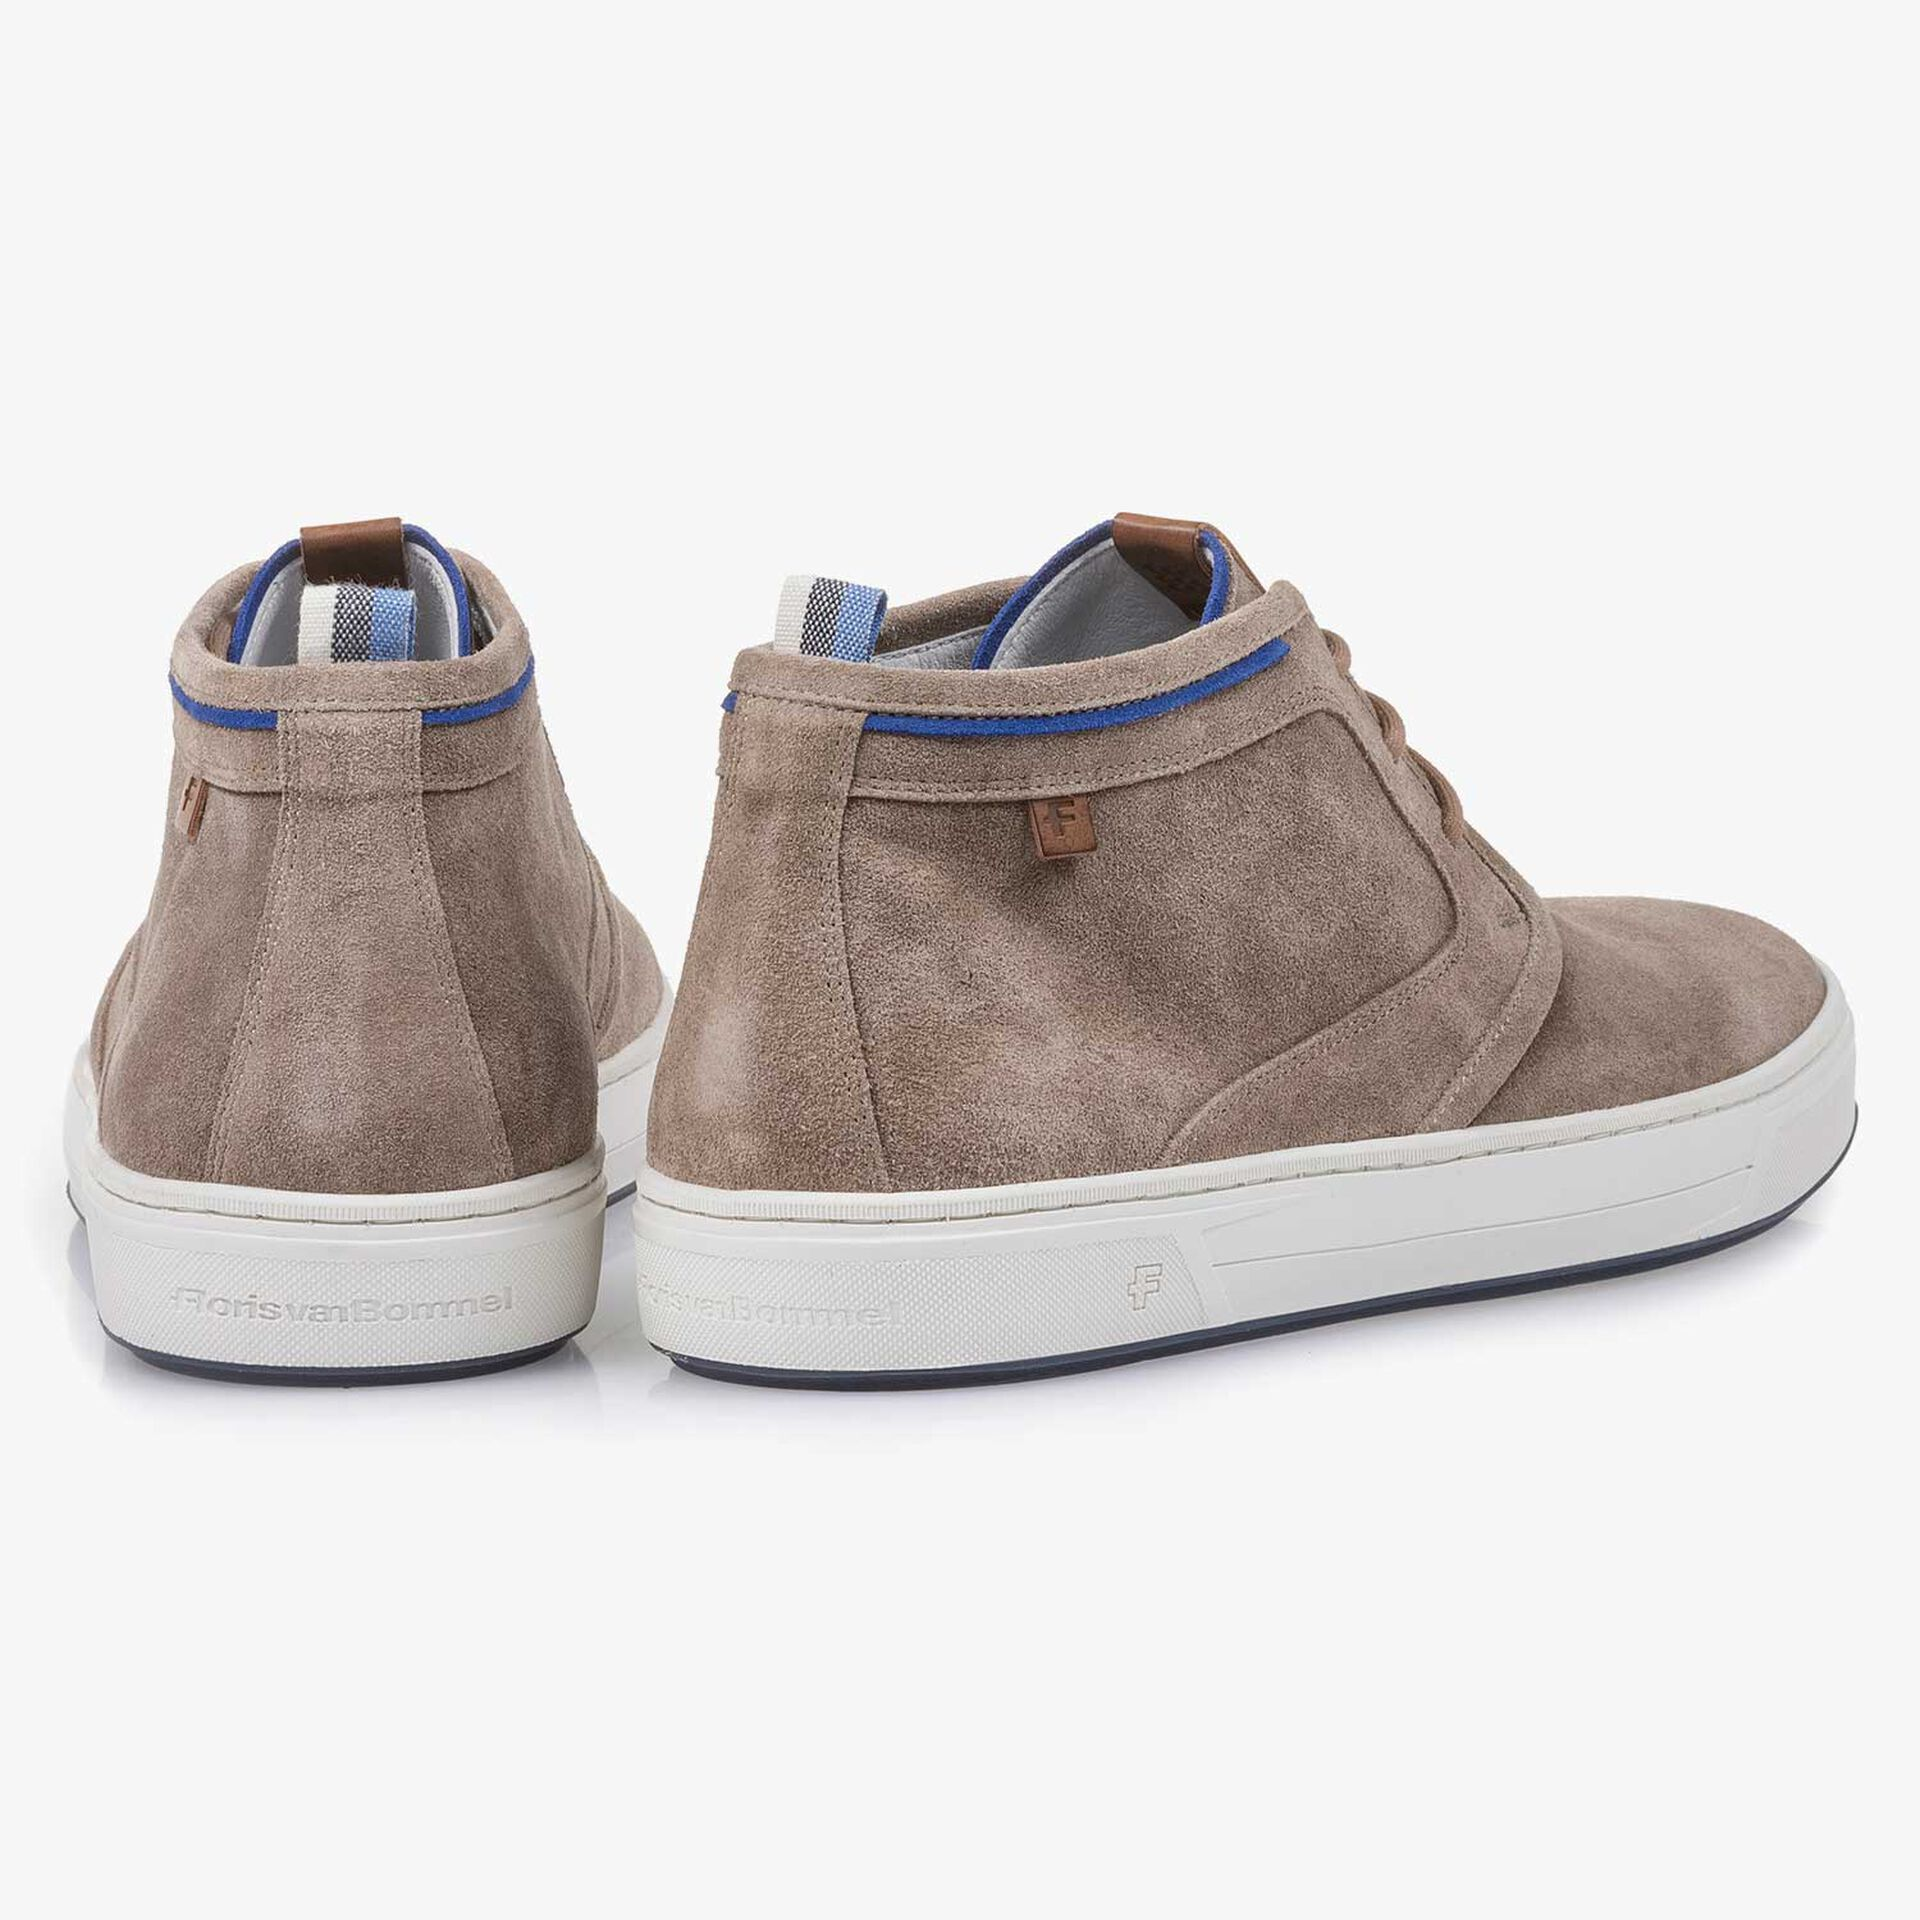 Taupe-coloured washed suede leather lace shoe